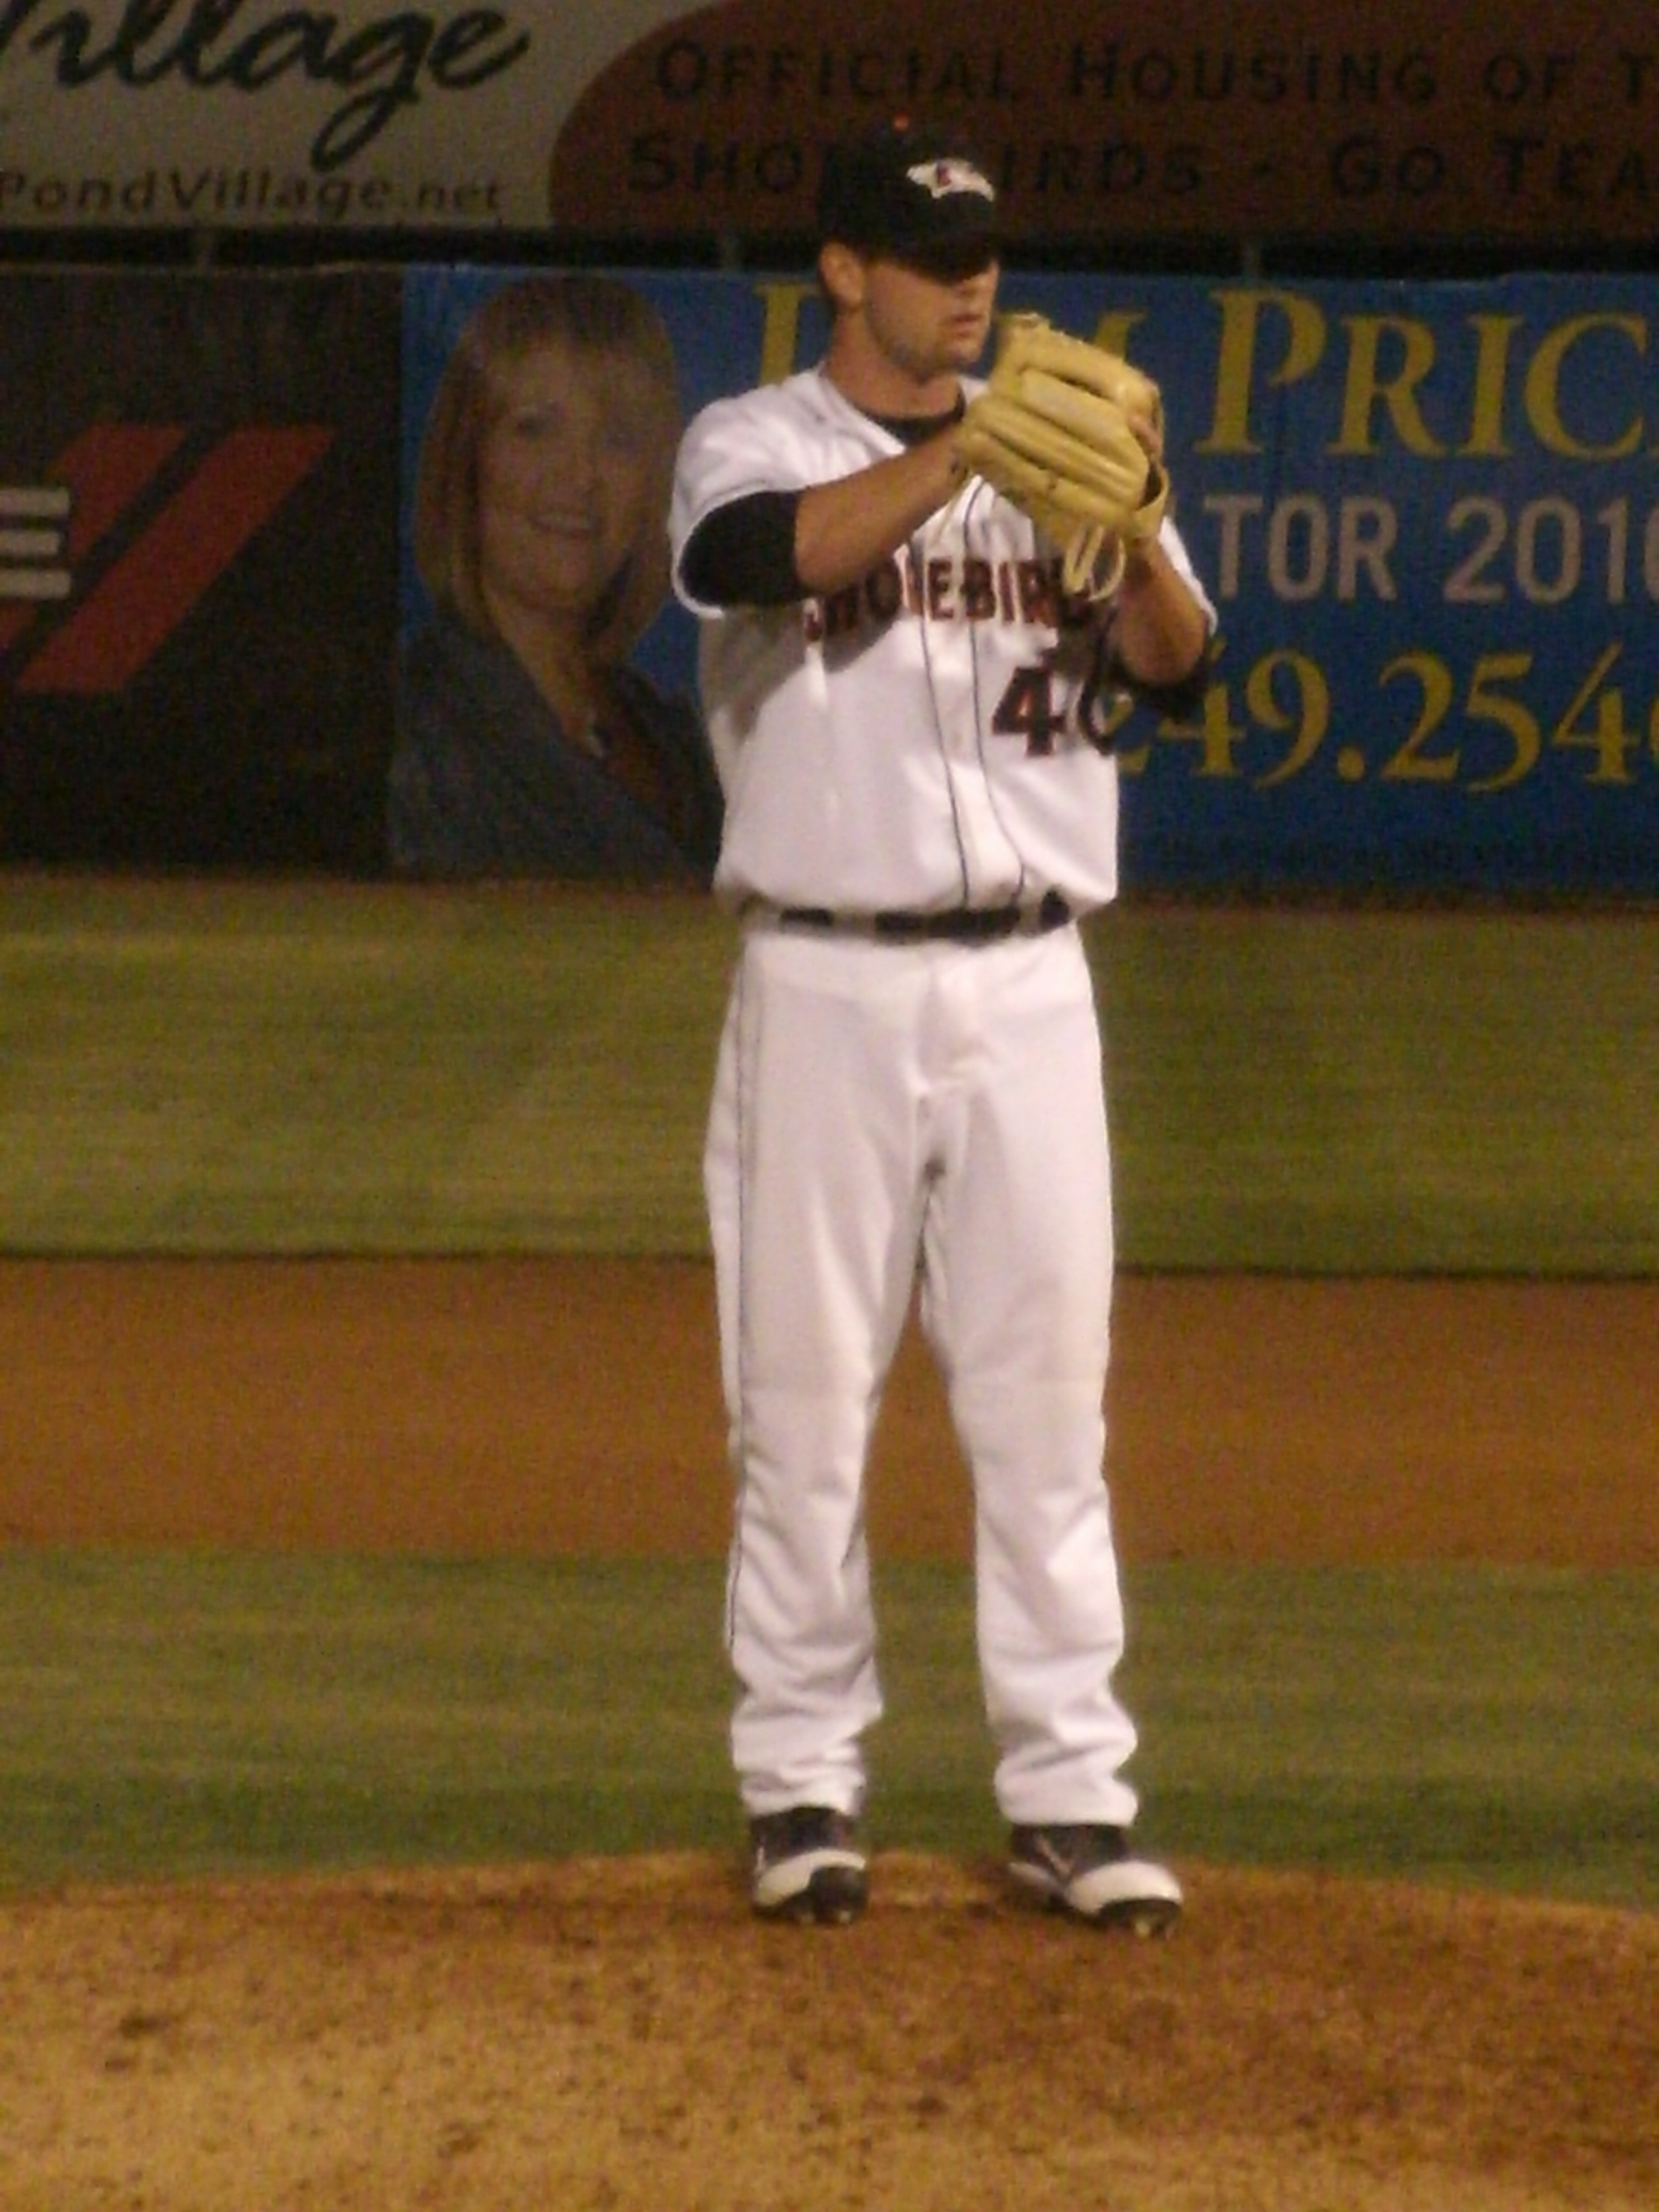 David Walters gets set to face Savannah in an April 27 game. He would toss a scoreless ninth.